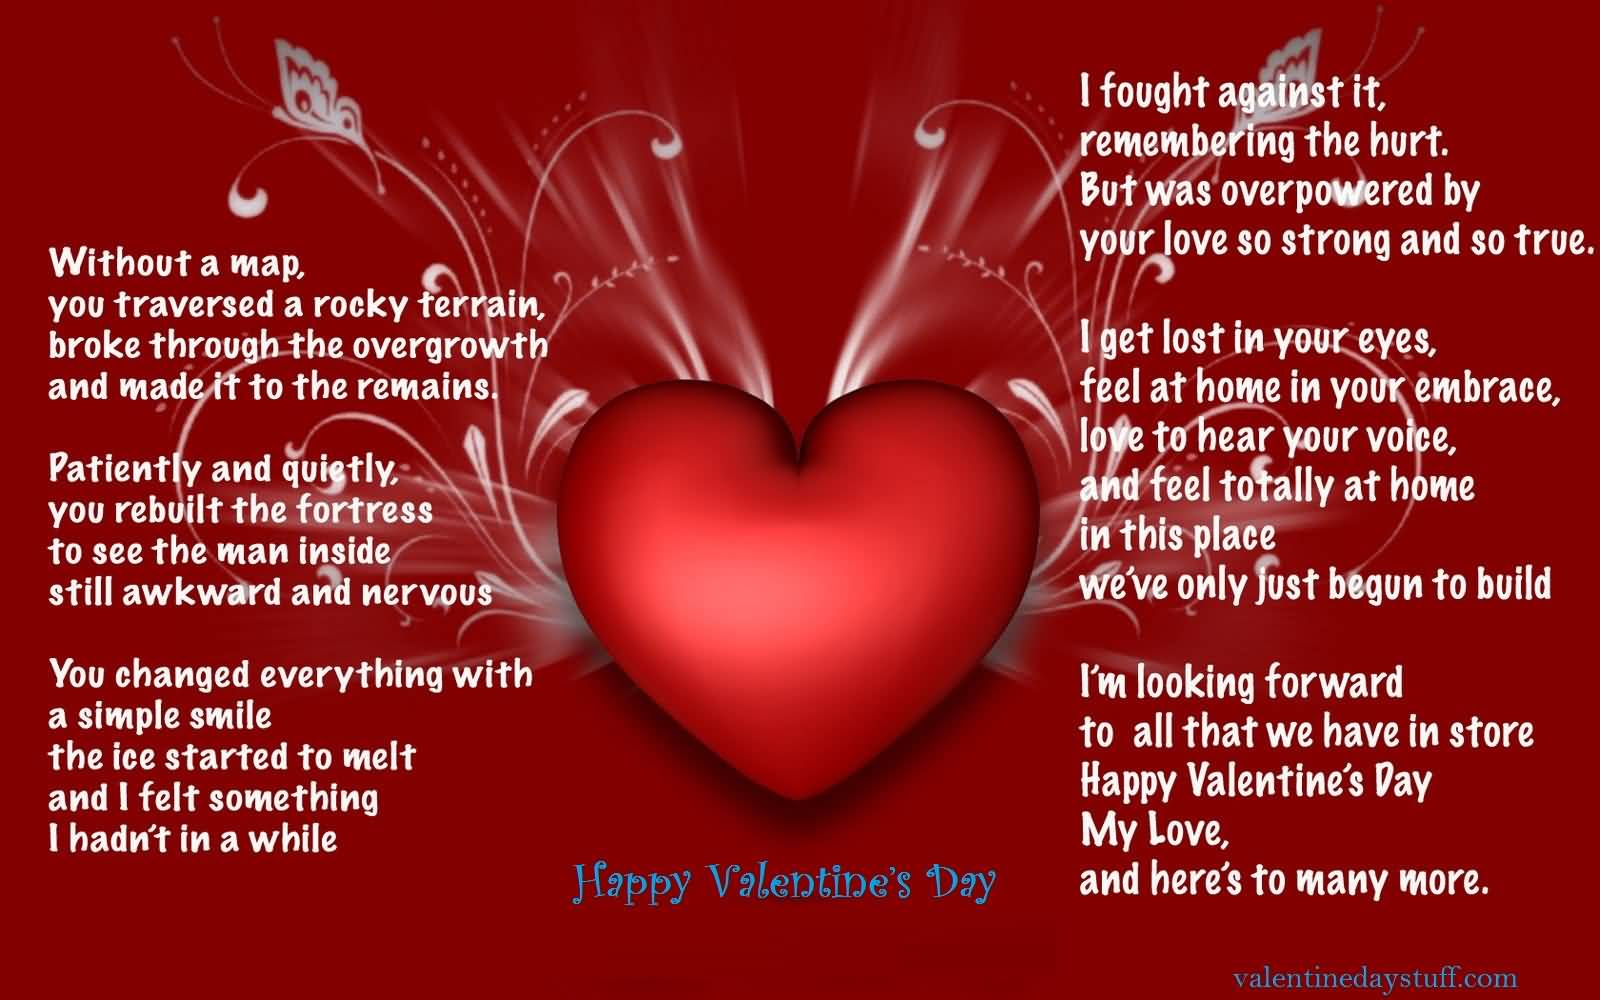 Free Download Valentines Day Quotes Meme Image 16